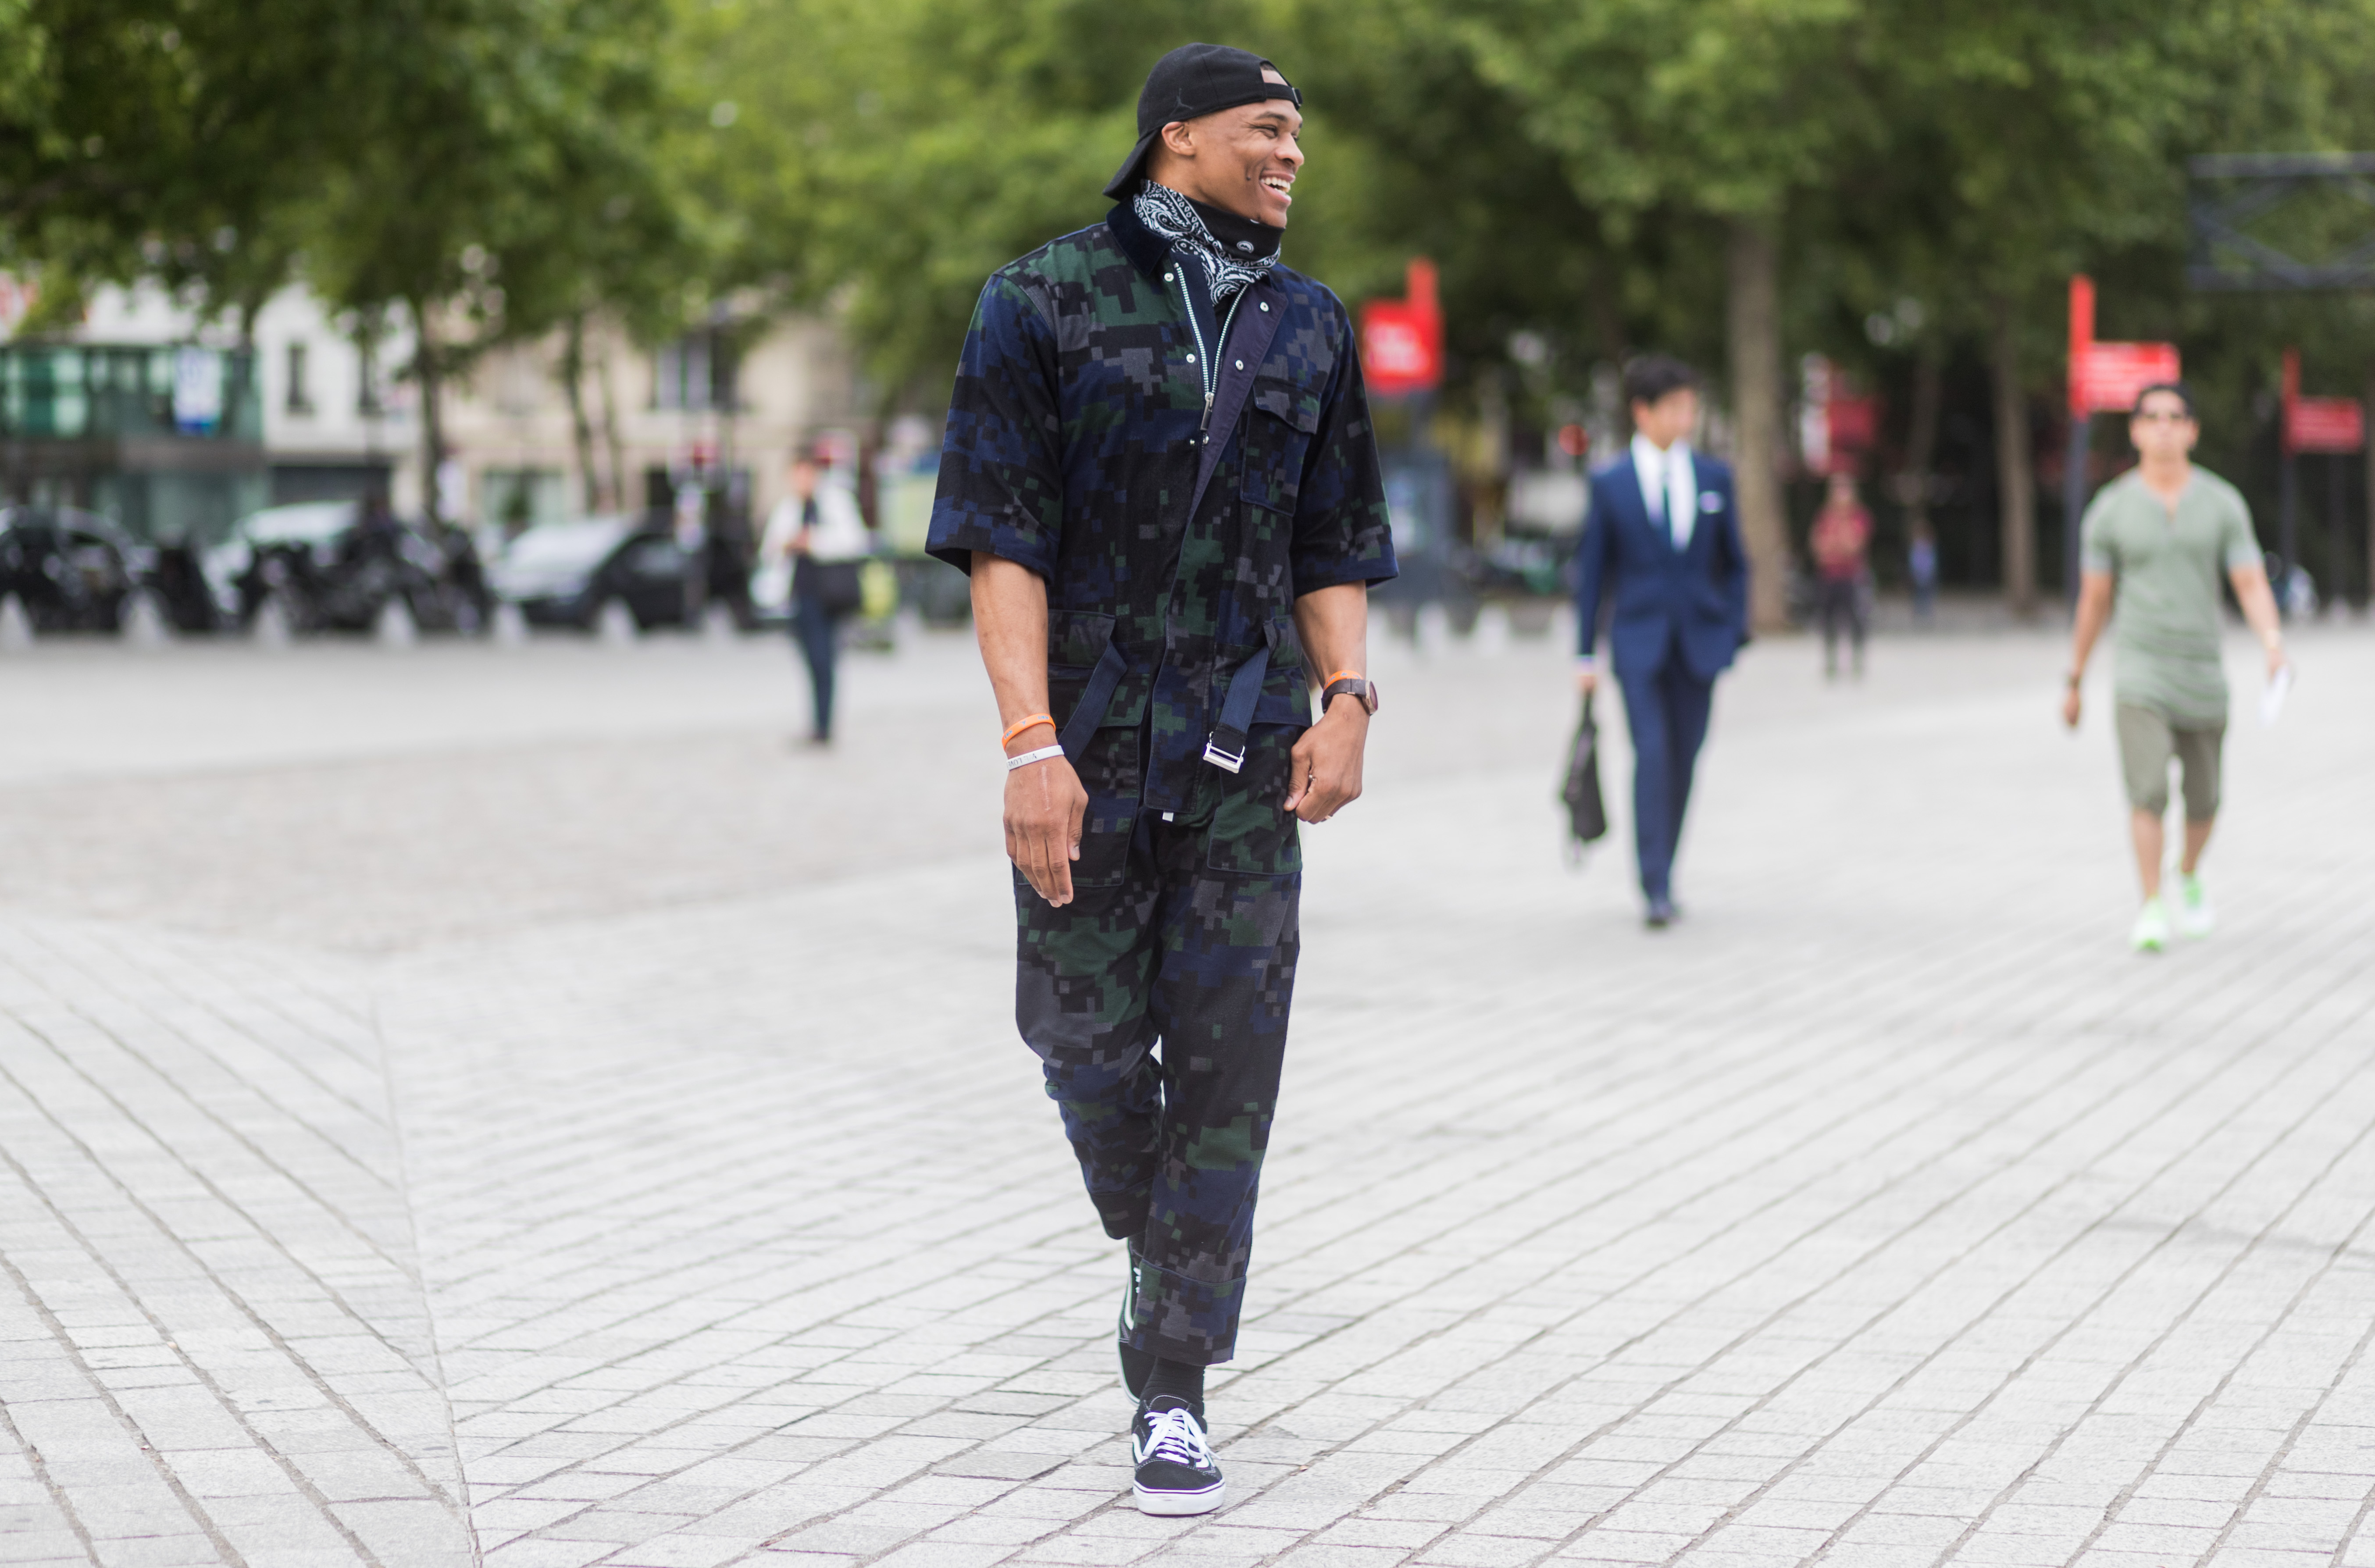 PARIS, FRANCE - JUNE 24: Russell Westbrook outside Sacai during Paris Fashion Week Menswear Spring/Summer 2018 Day Four on June 24, 2017 in Paris, France. (Photo by Christian Vierig/Getty Images)